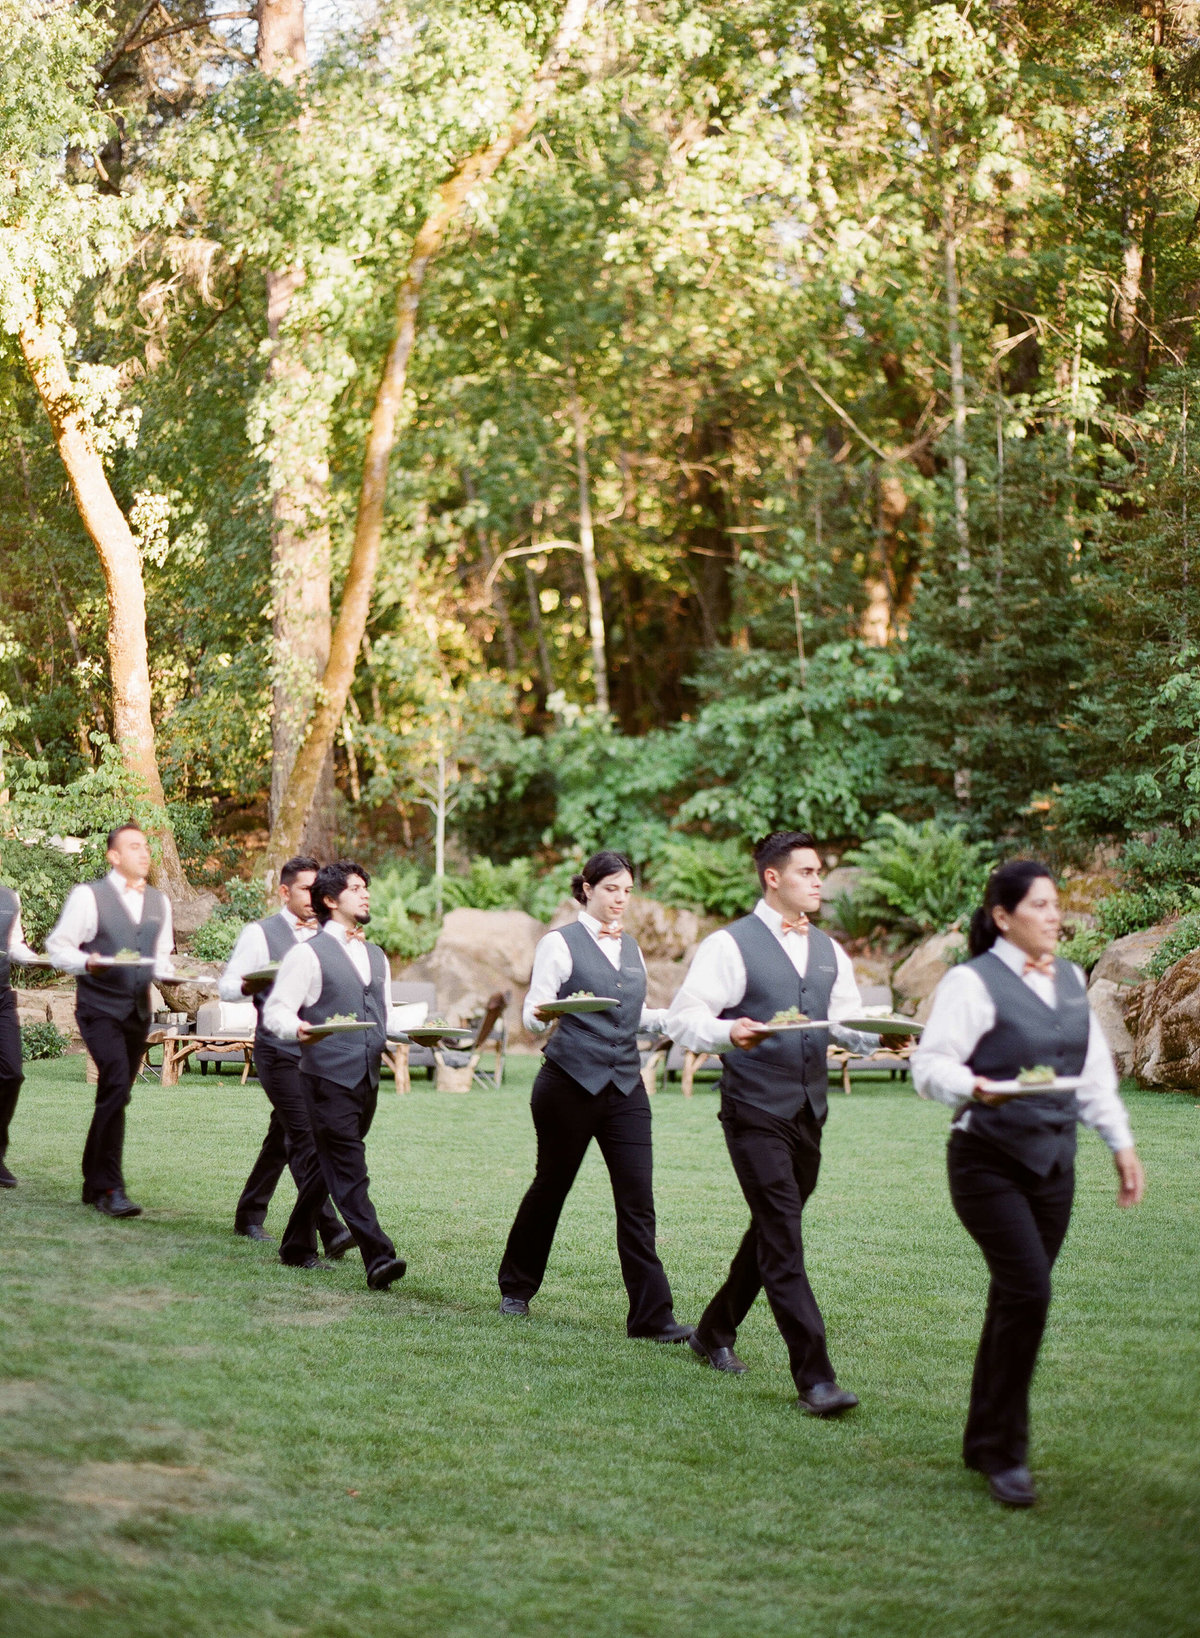 59-KTMerry-wedding-photography-waitstaff-Meadowood-NapaValley